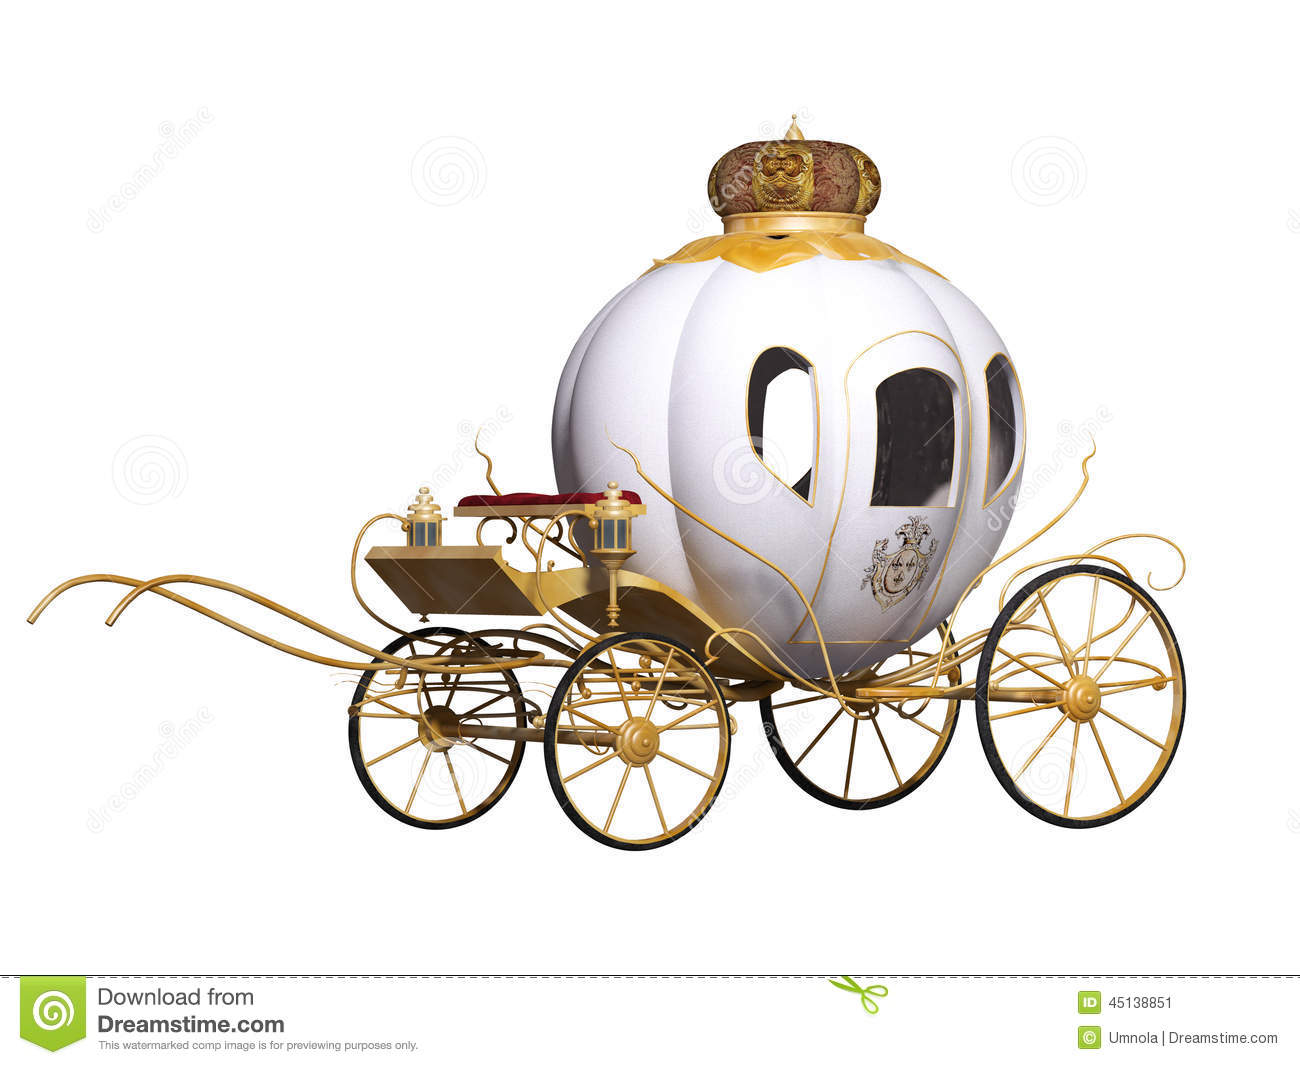 Fairy Tale Royal Carriage Stock Illustration - Image: 45138851